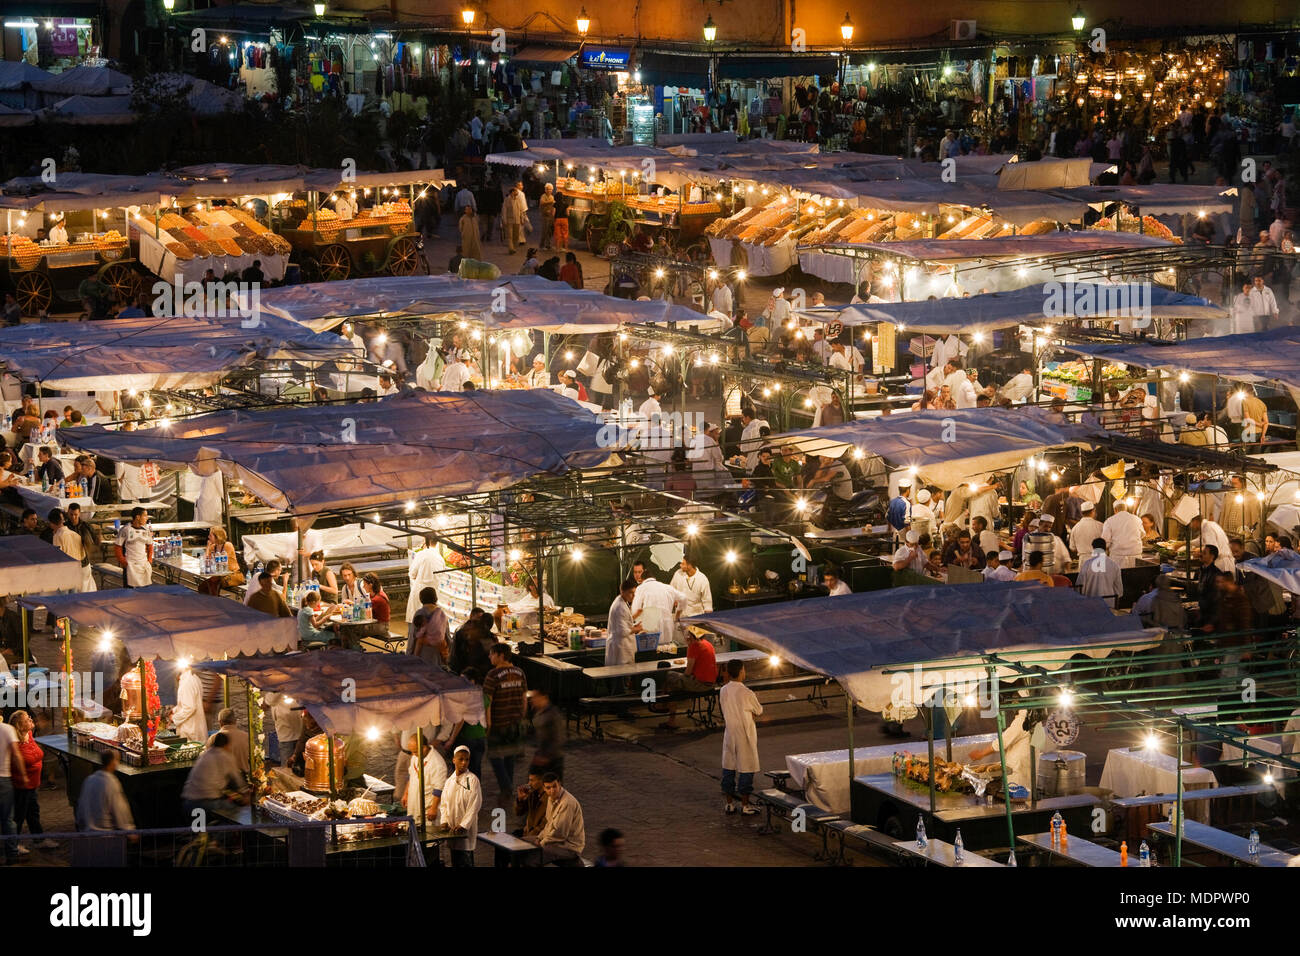 Marrakesh, Morocco; view of the Djemaa el Fna at sunset. Stock Photo